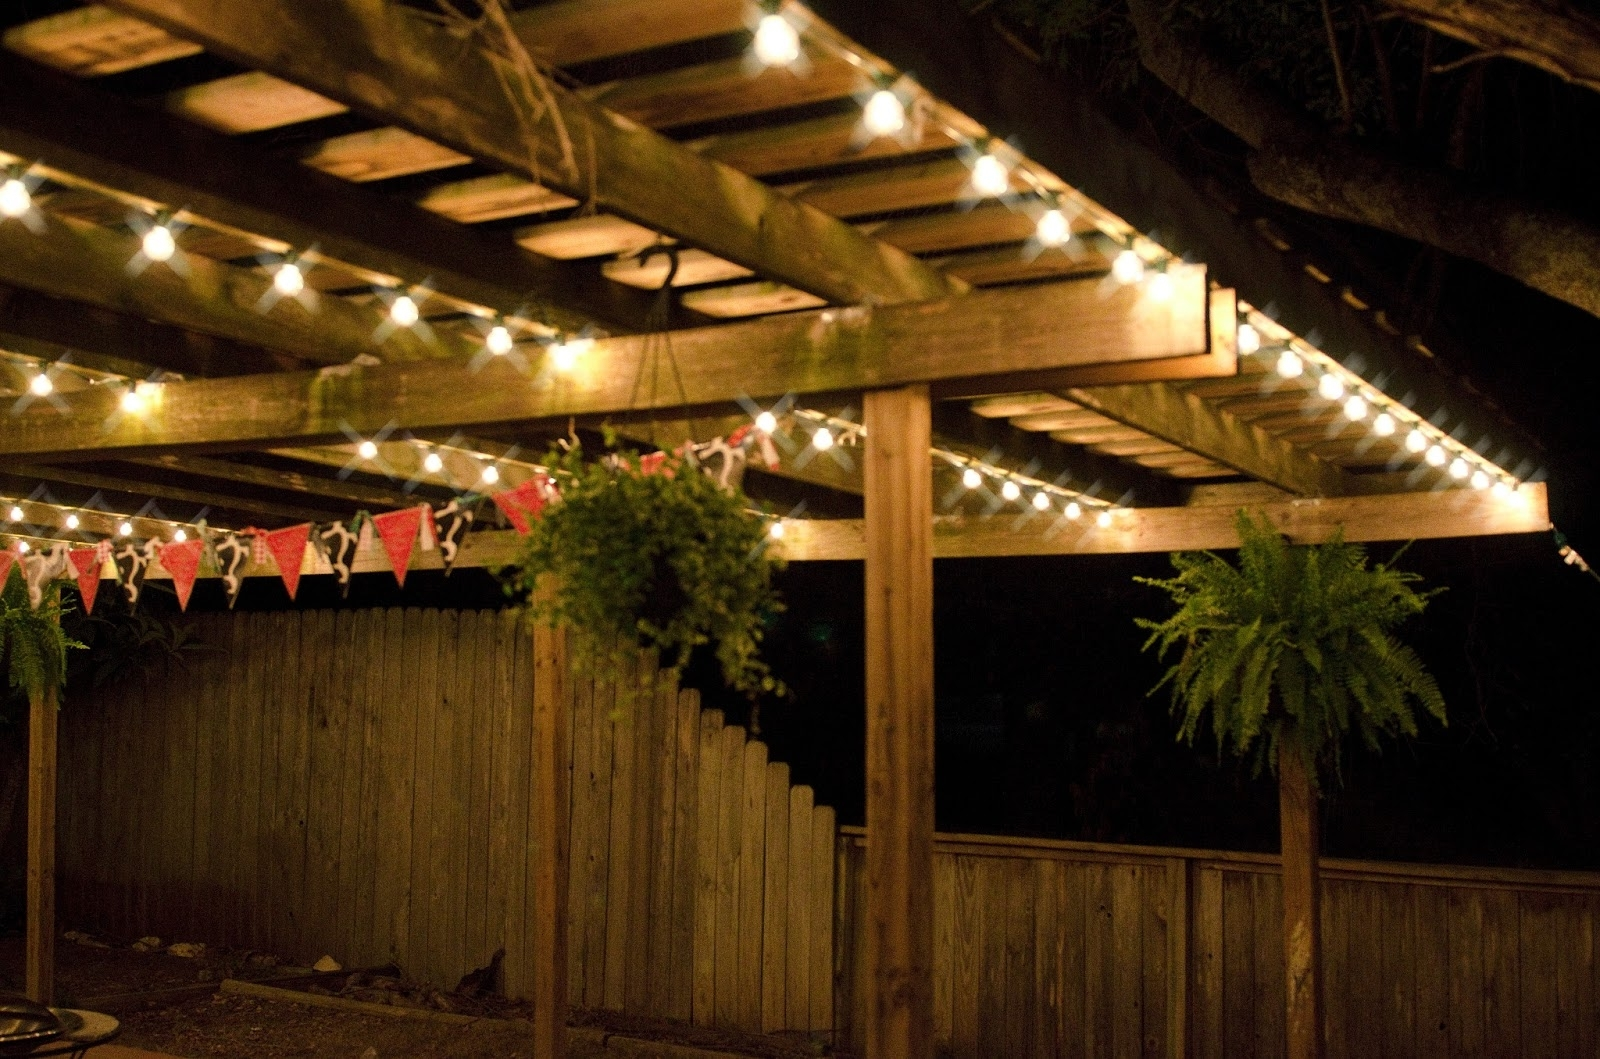 Solar Hanging Outdoor Patio Lights Inside Best And Newest Outdoor Hanging String Lights Stringhts Bella Vista Designs Patio (View 15 of 20)